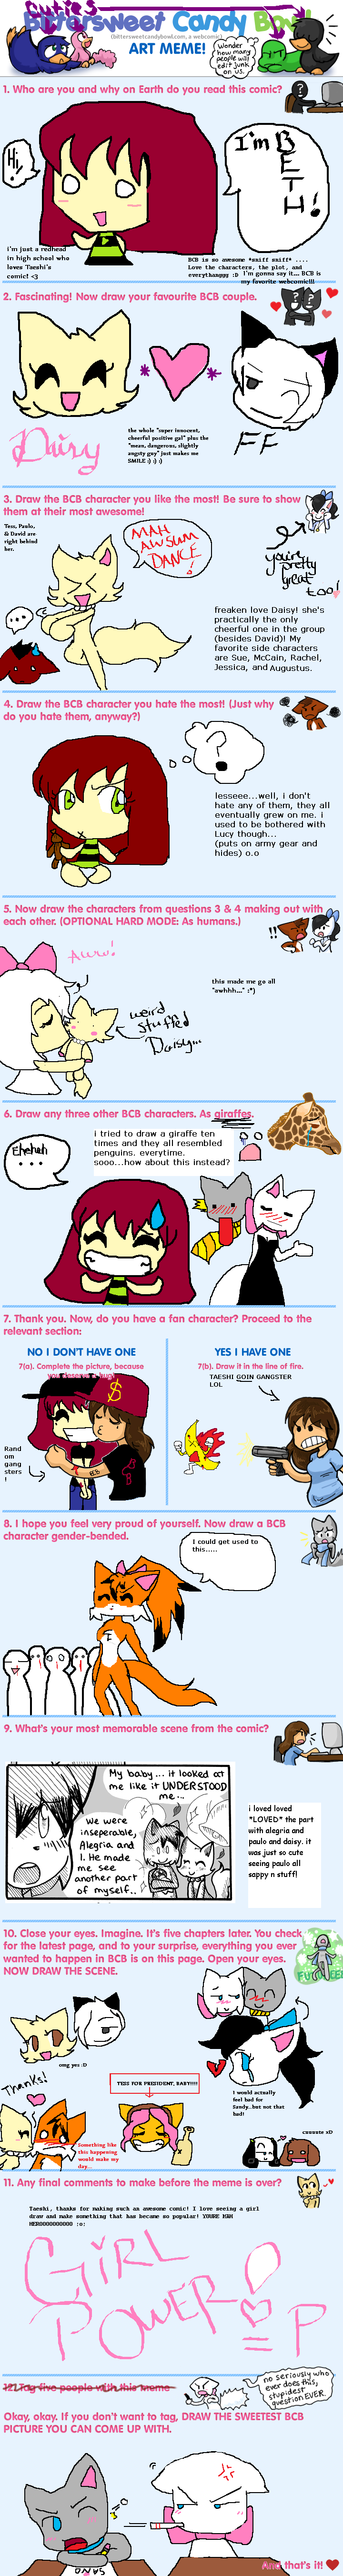 Candybooru image #4906, tagged with Abbey Augustus AugustusxDaisy BCB_Art_Meme Daisy David Lucy Mike MikexLucy Paulo Rachel Tess iSpyy_(Artist) meme